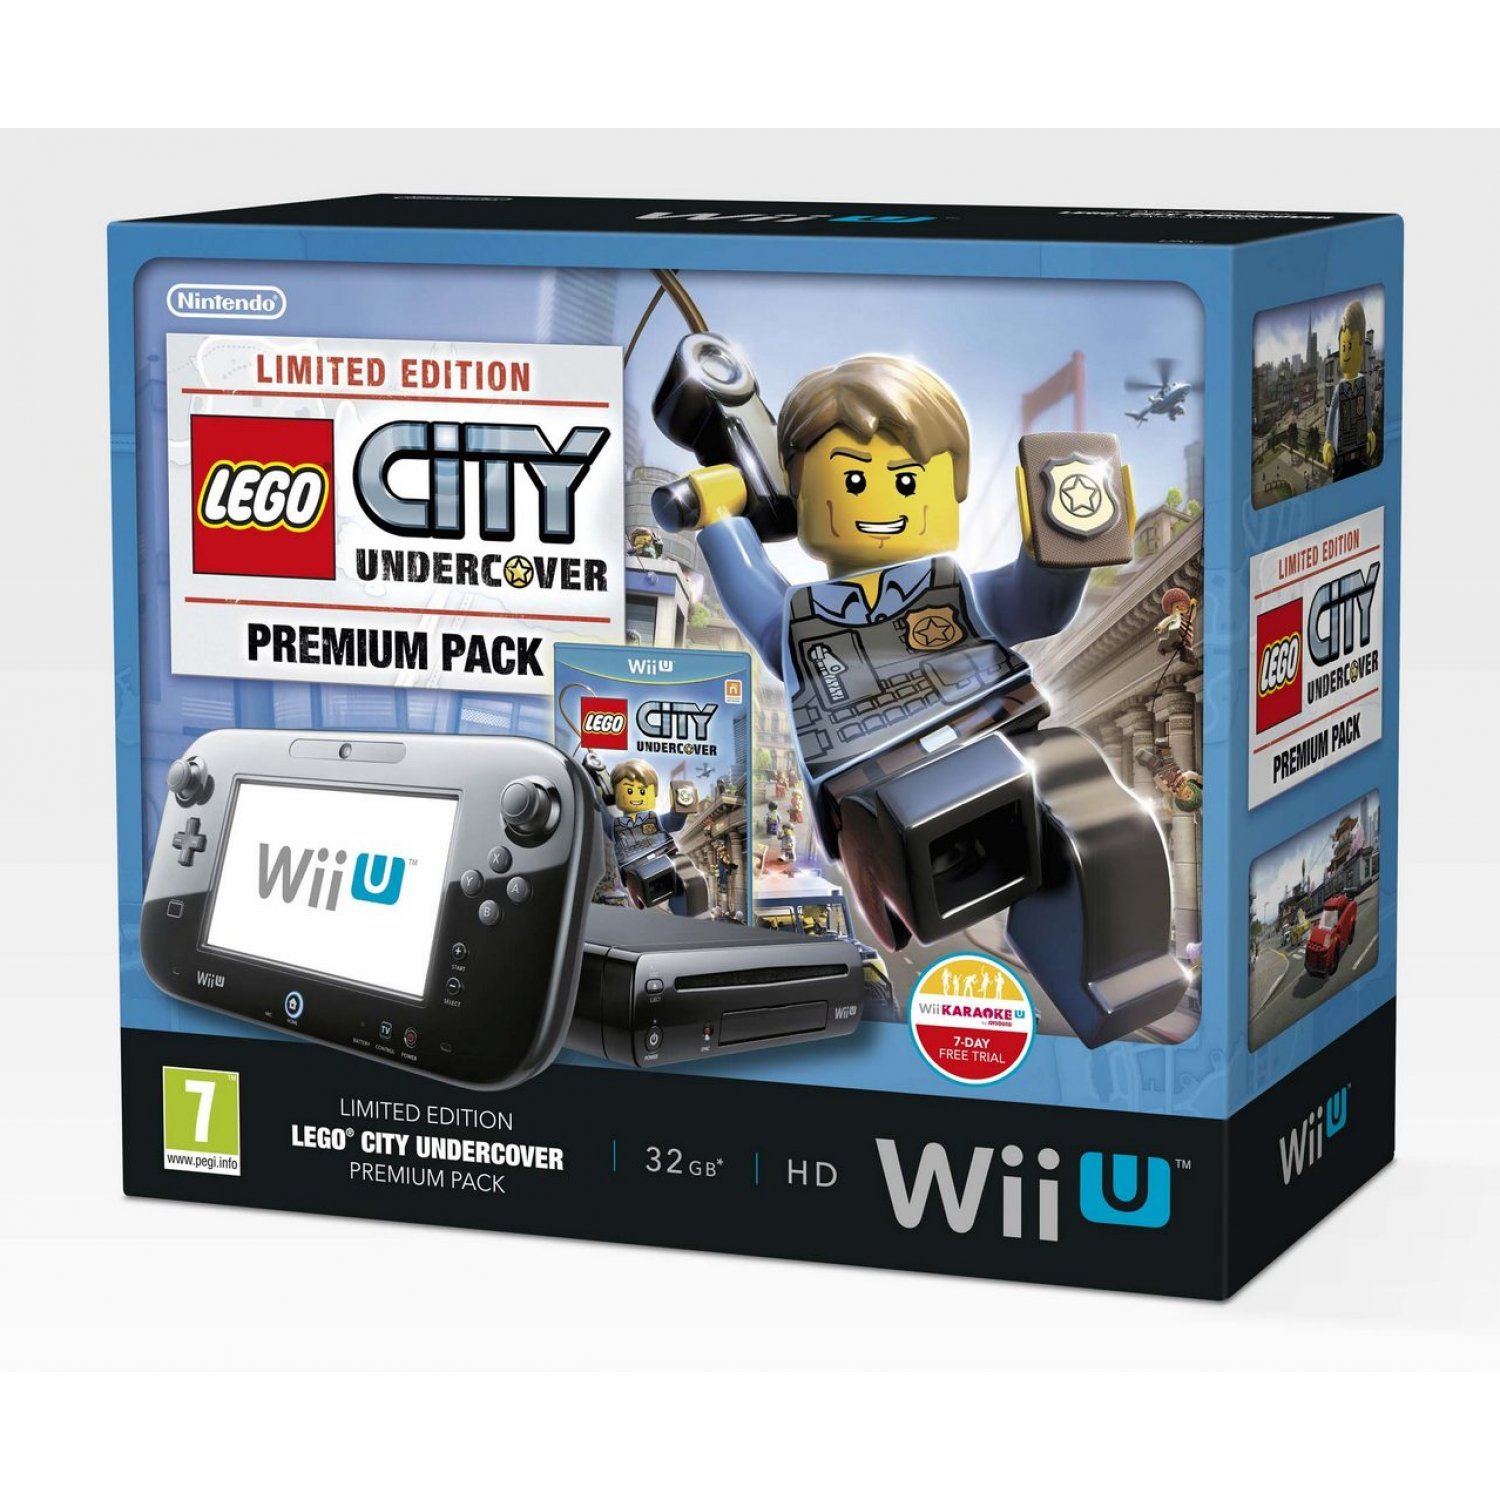 wii u limited edition lego city undercover premium pack. Black Bedroom Furniture Sets. Home Design Ideas